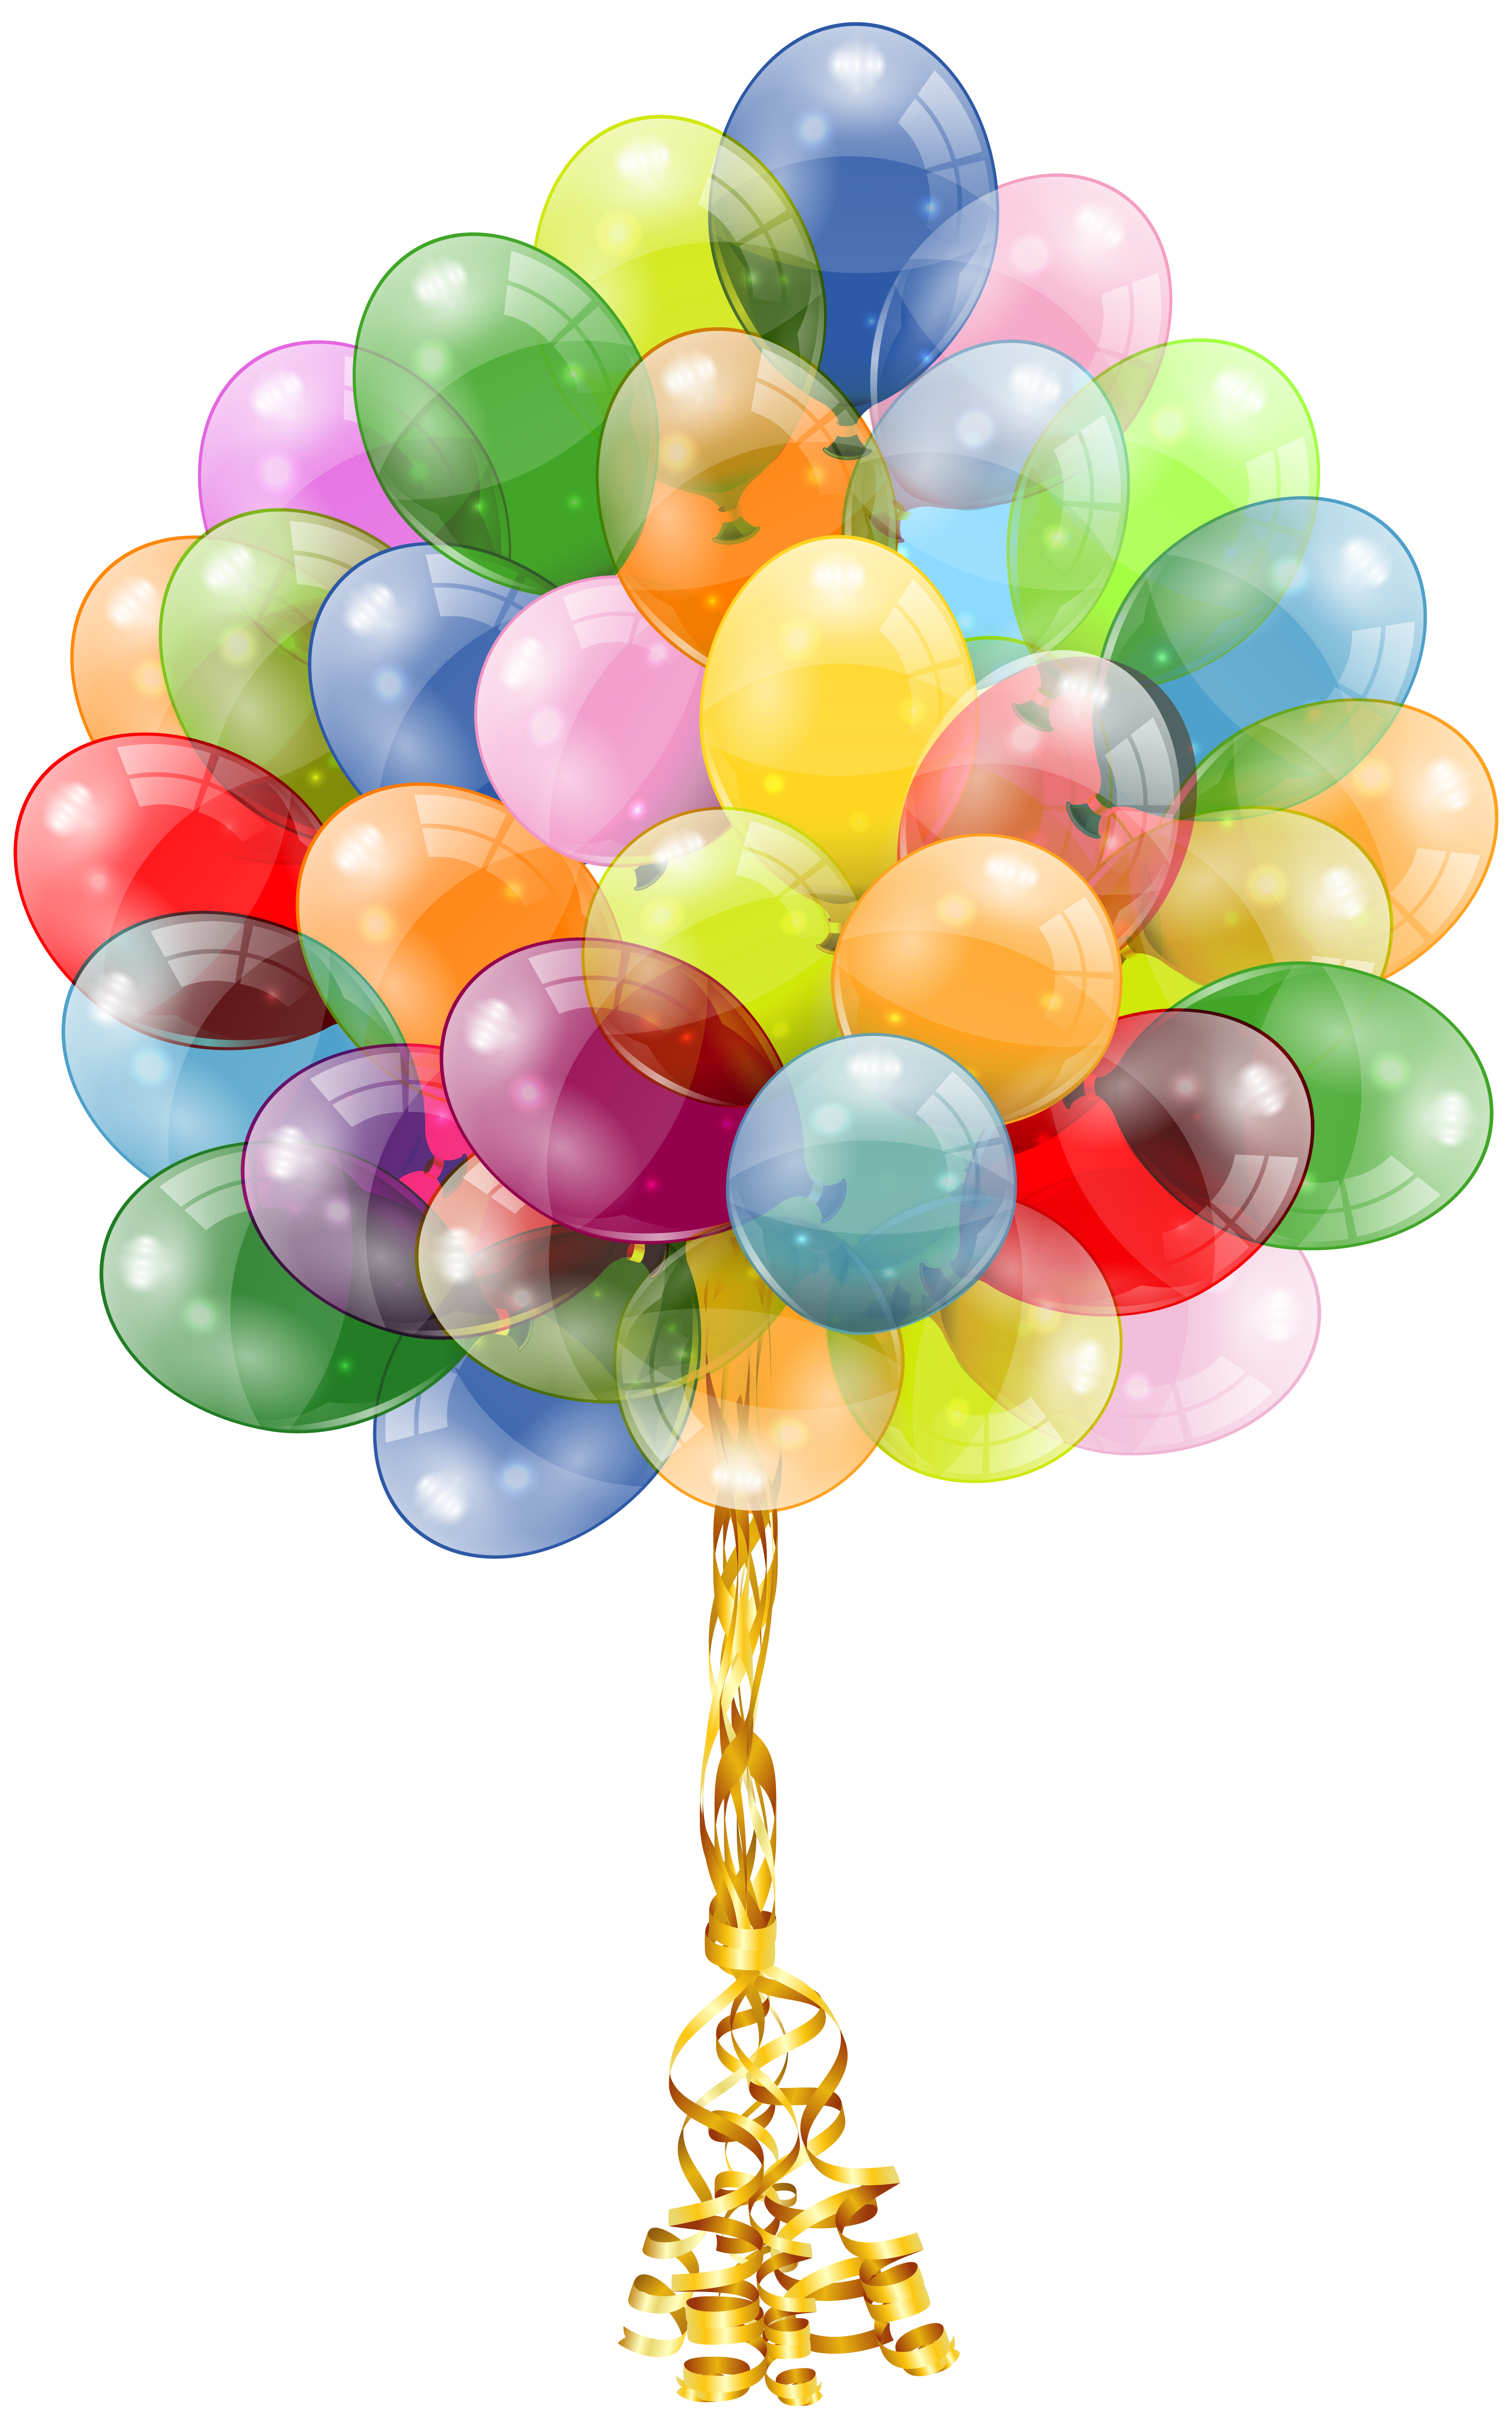 Pin by on birthday. Clipart balloon gold glitter